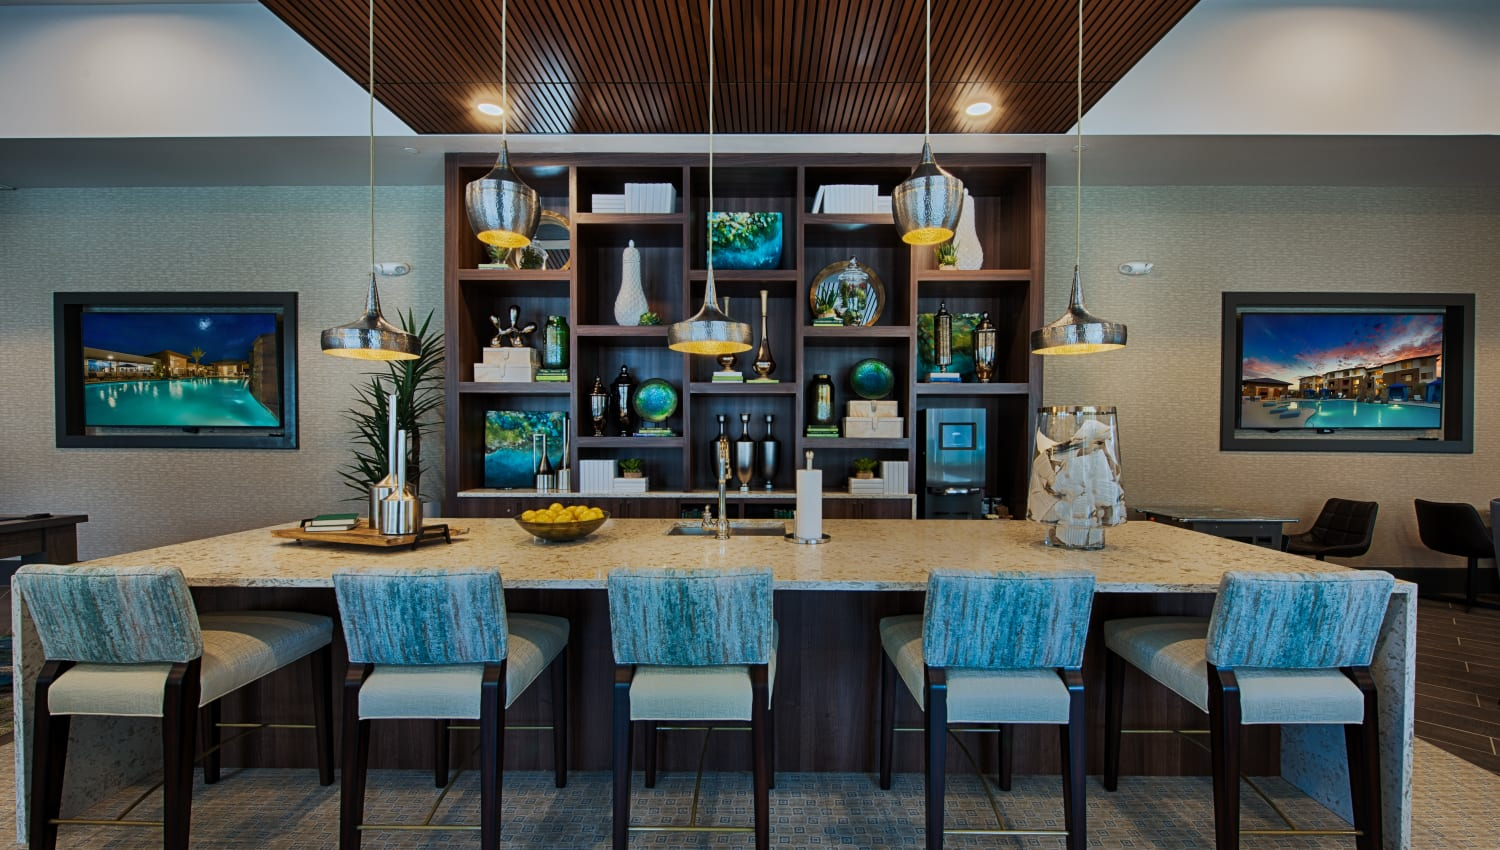 Community kitchen island at Ocio Plaza Del Rio in Peoria, Arizona